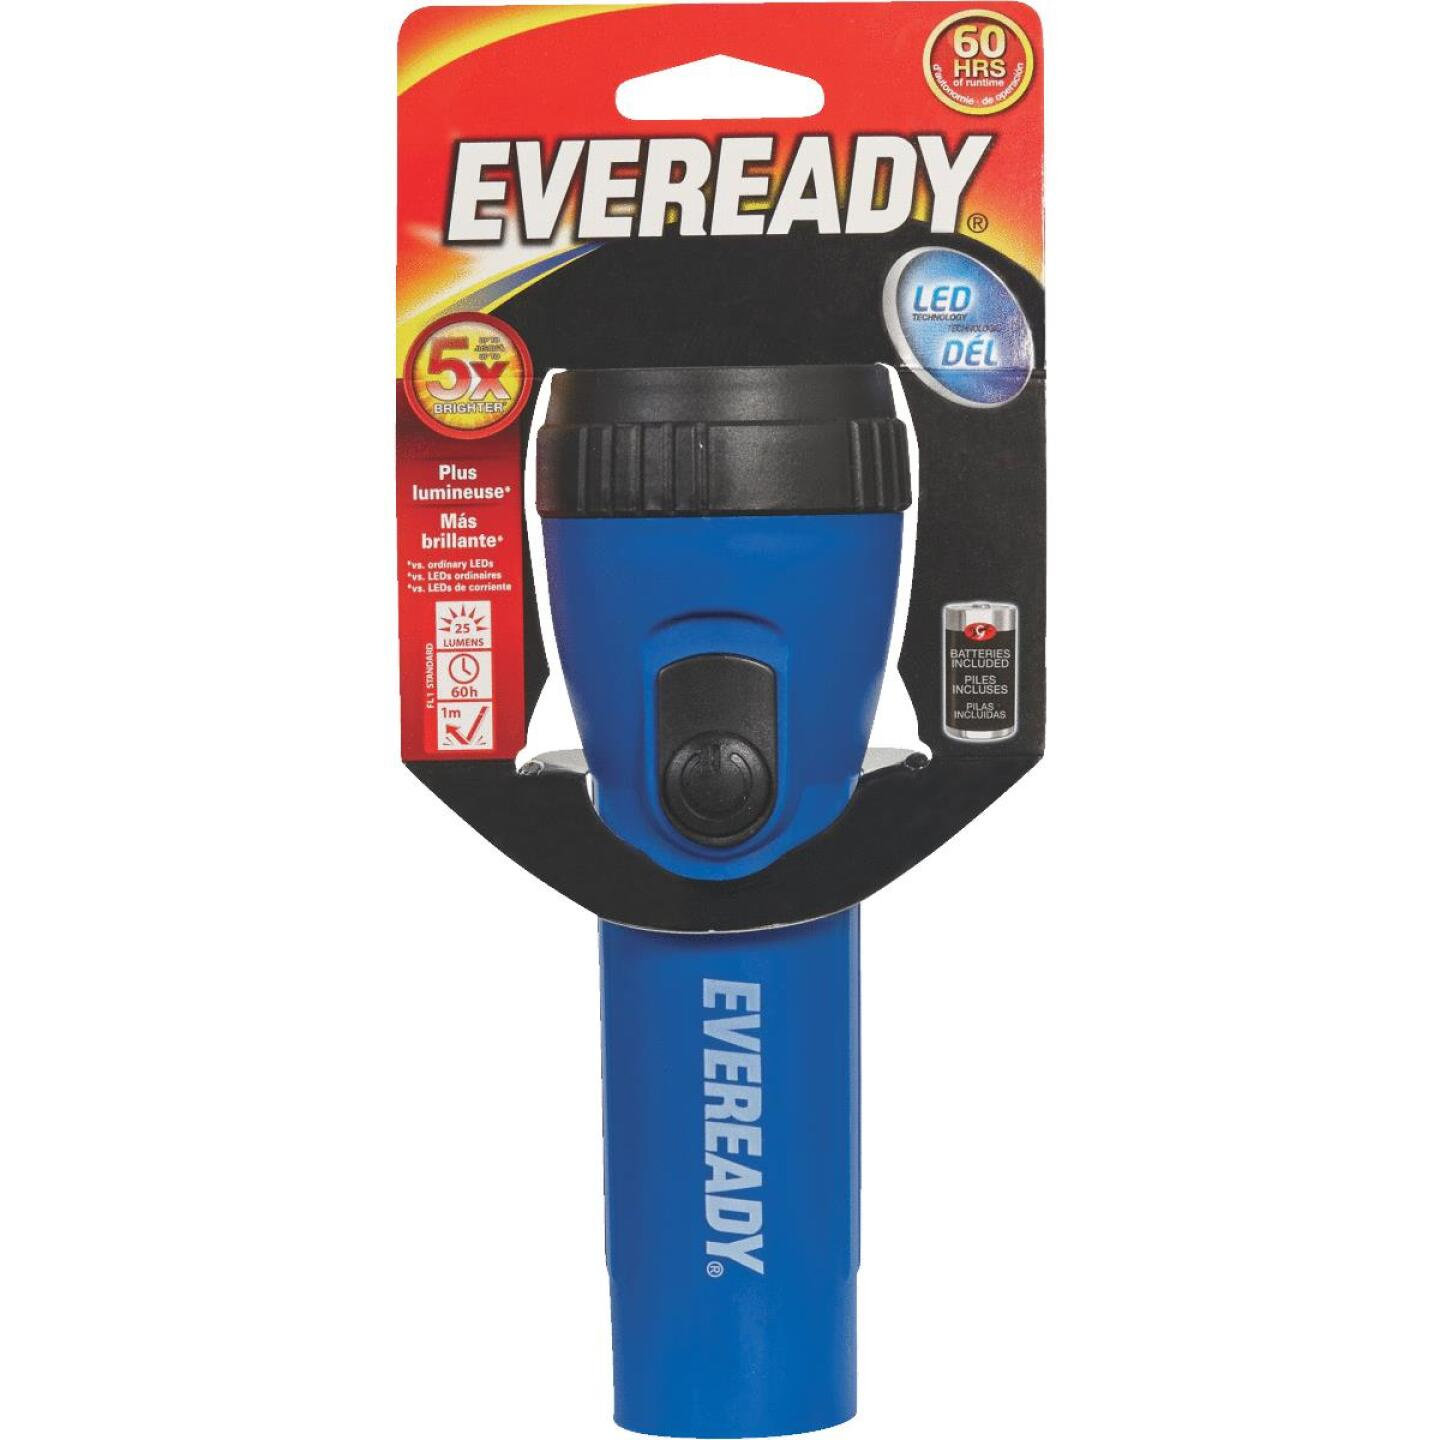 Eveready LED Red Economy Flashlight Image 1